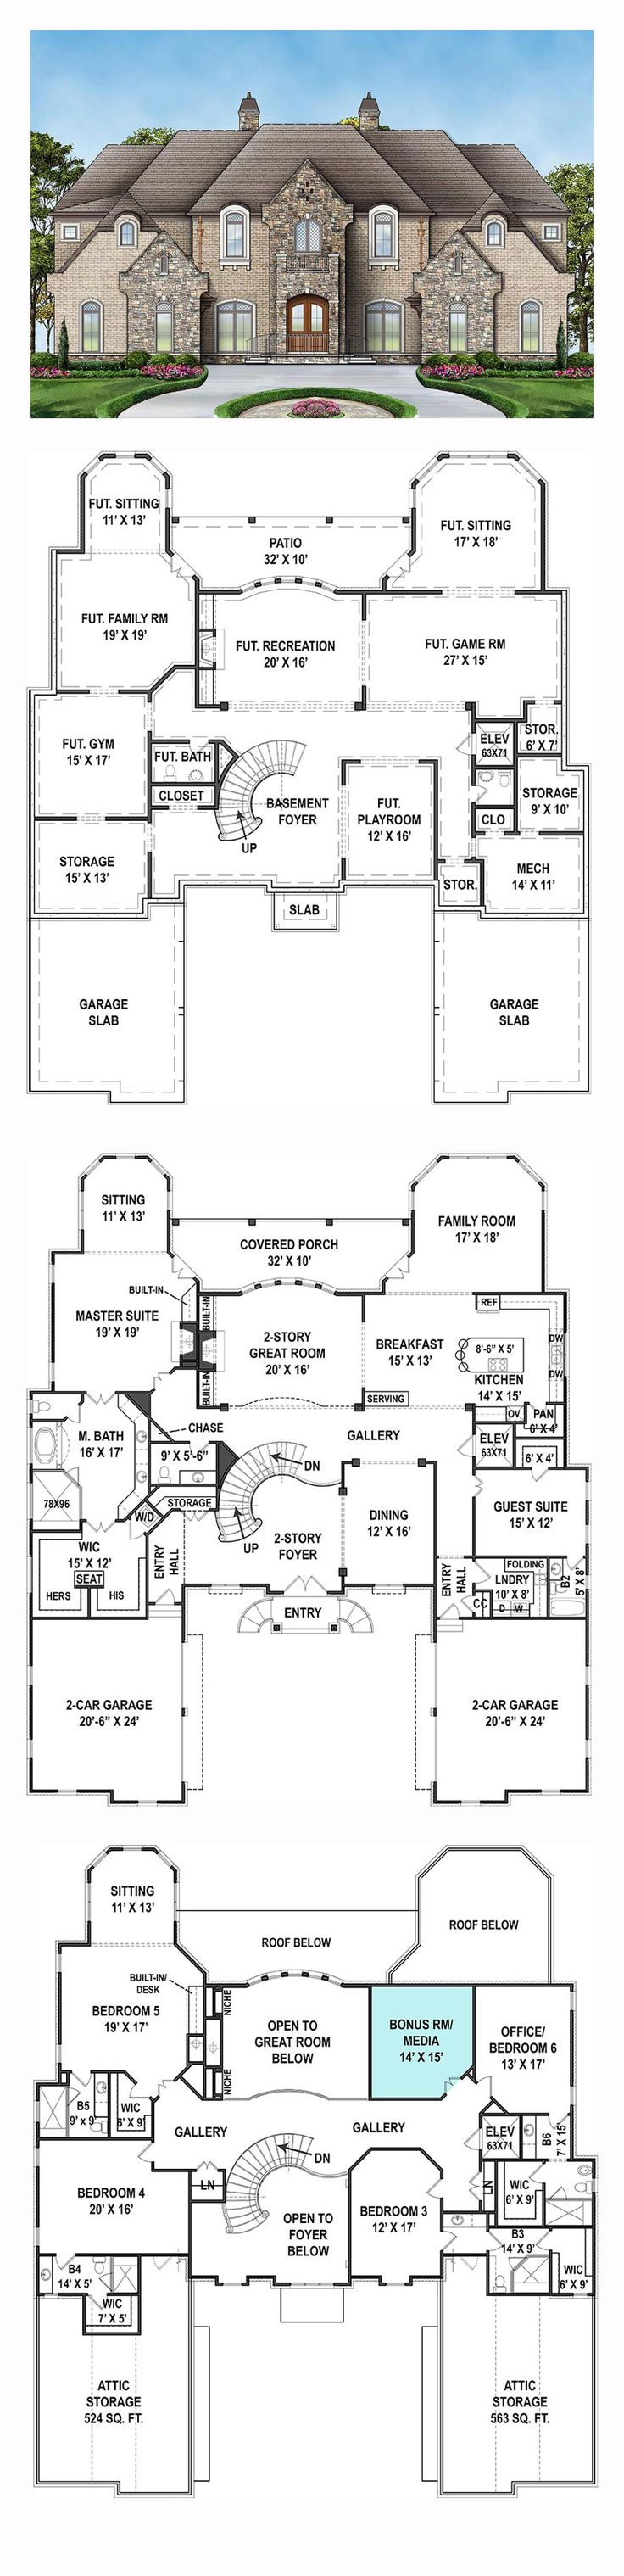 Mega Mansion House Plans best 25+ mansion floor plans ideas on pinterest | victorian house